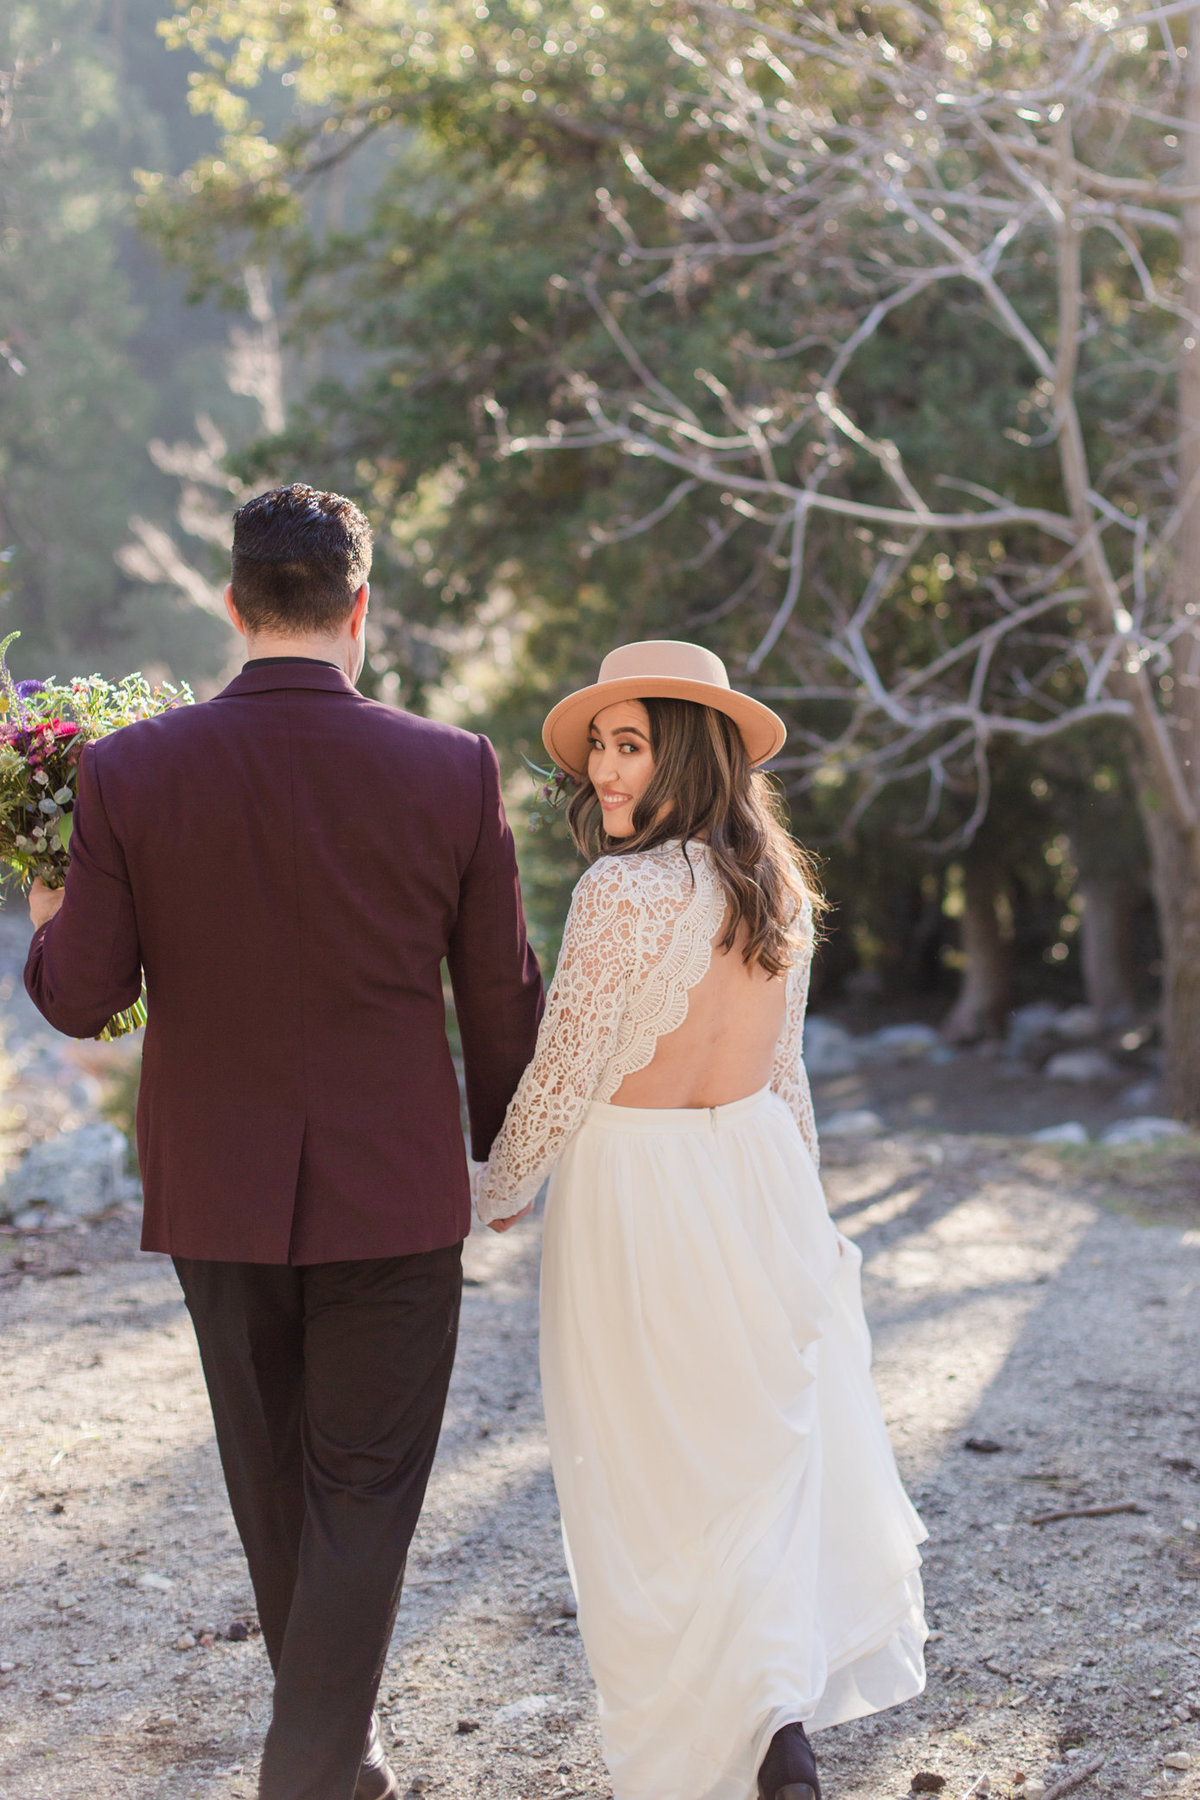 Mt. Baldy Elopement, Mt. Baldy Styled Shoot, Mt. Baldy Wedding, Forest Elopement, Forest Wedding, Boho Wedding, Boho Elopement, Mt. Baldy Boho, Forest Boho, Woodland Boho-17